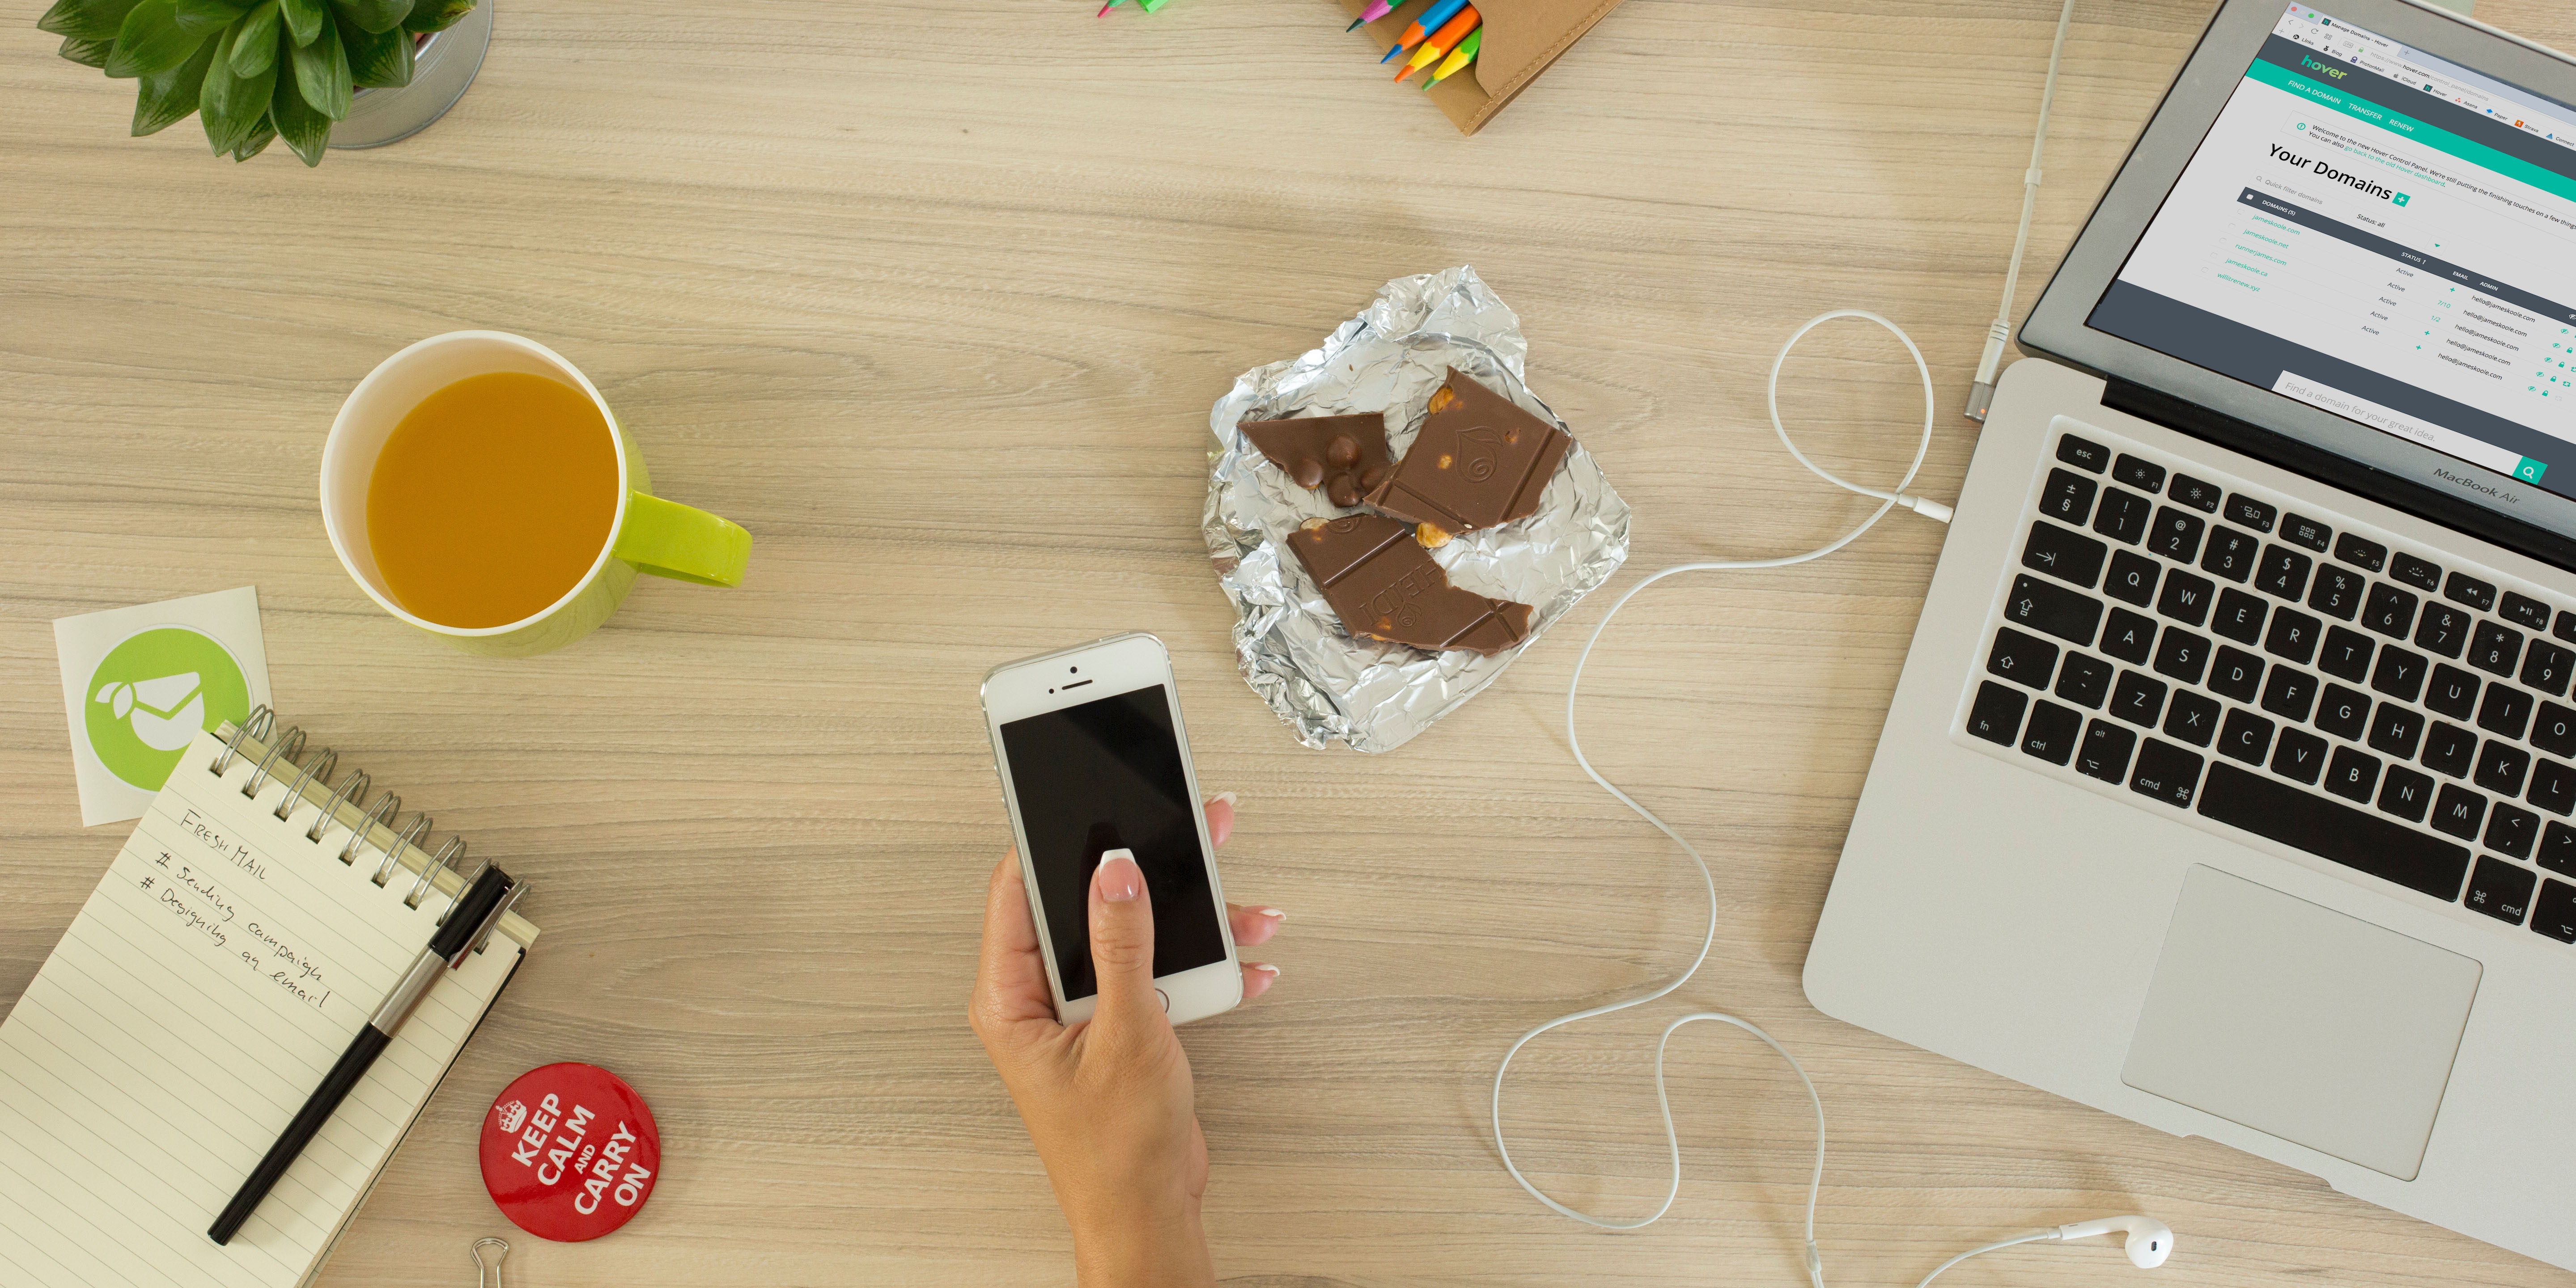 A person using a phone and a laptop on a cluttered desk. And there's chocolate.